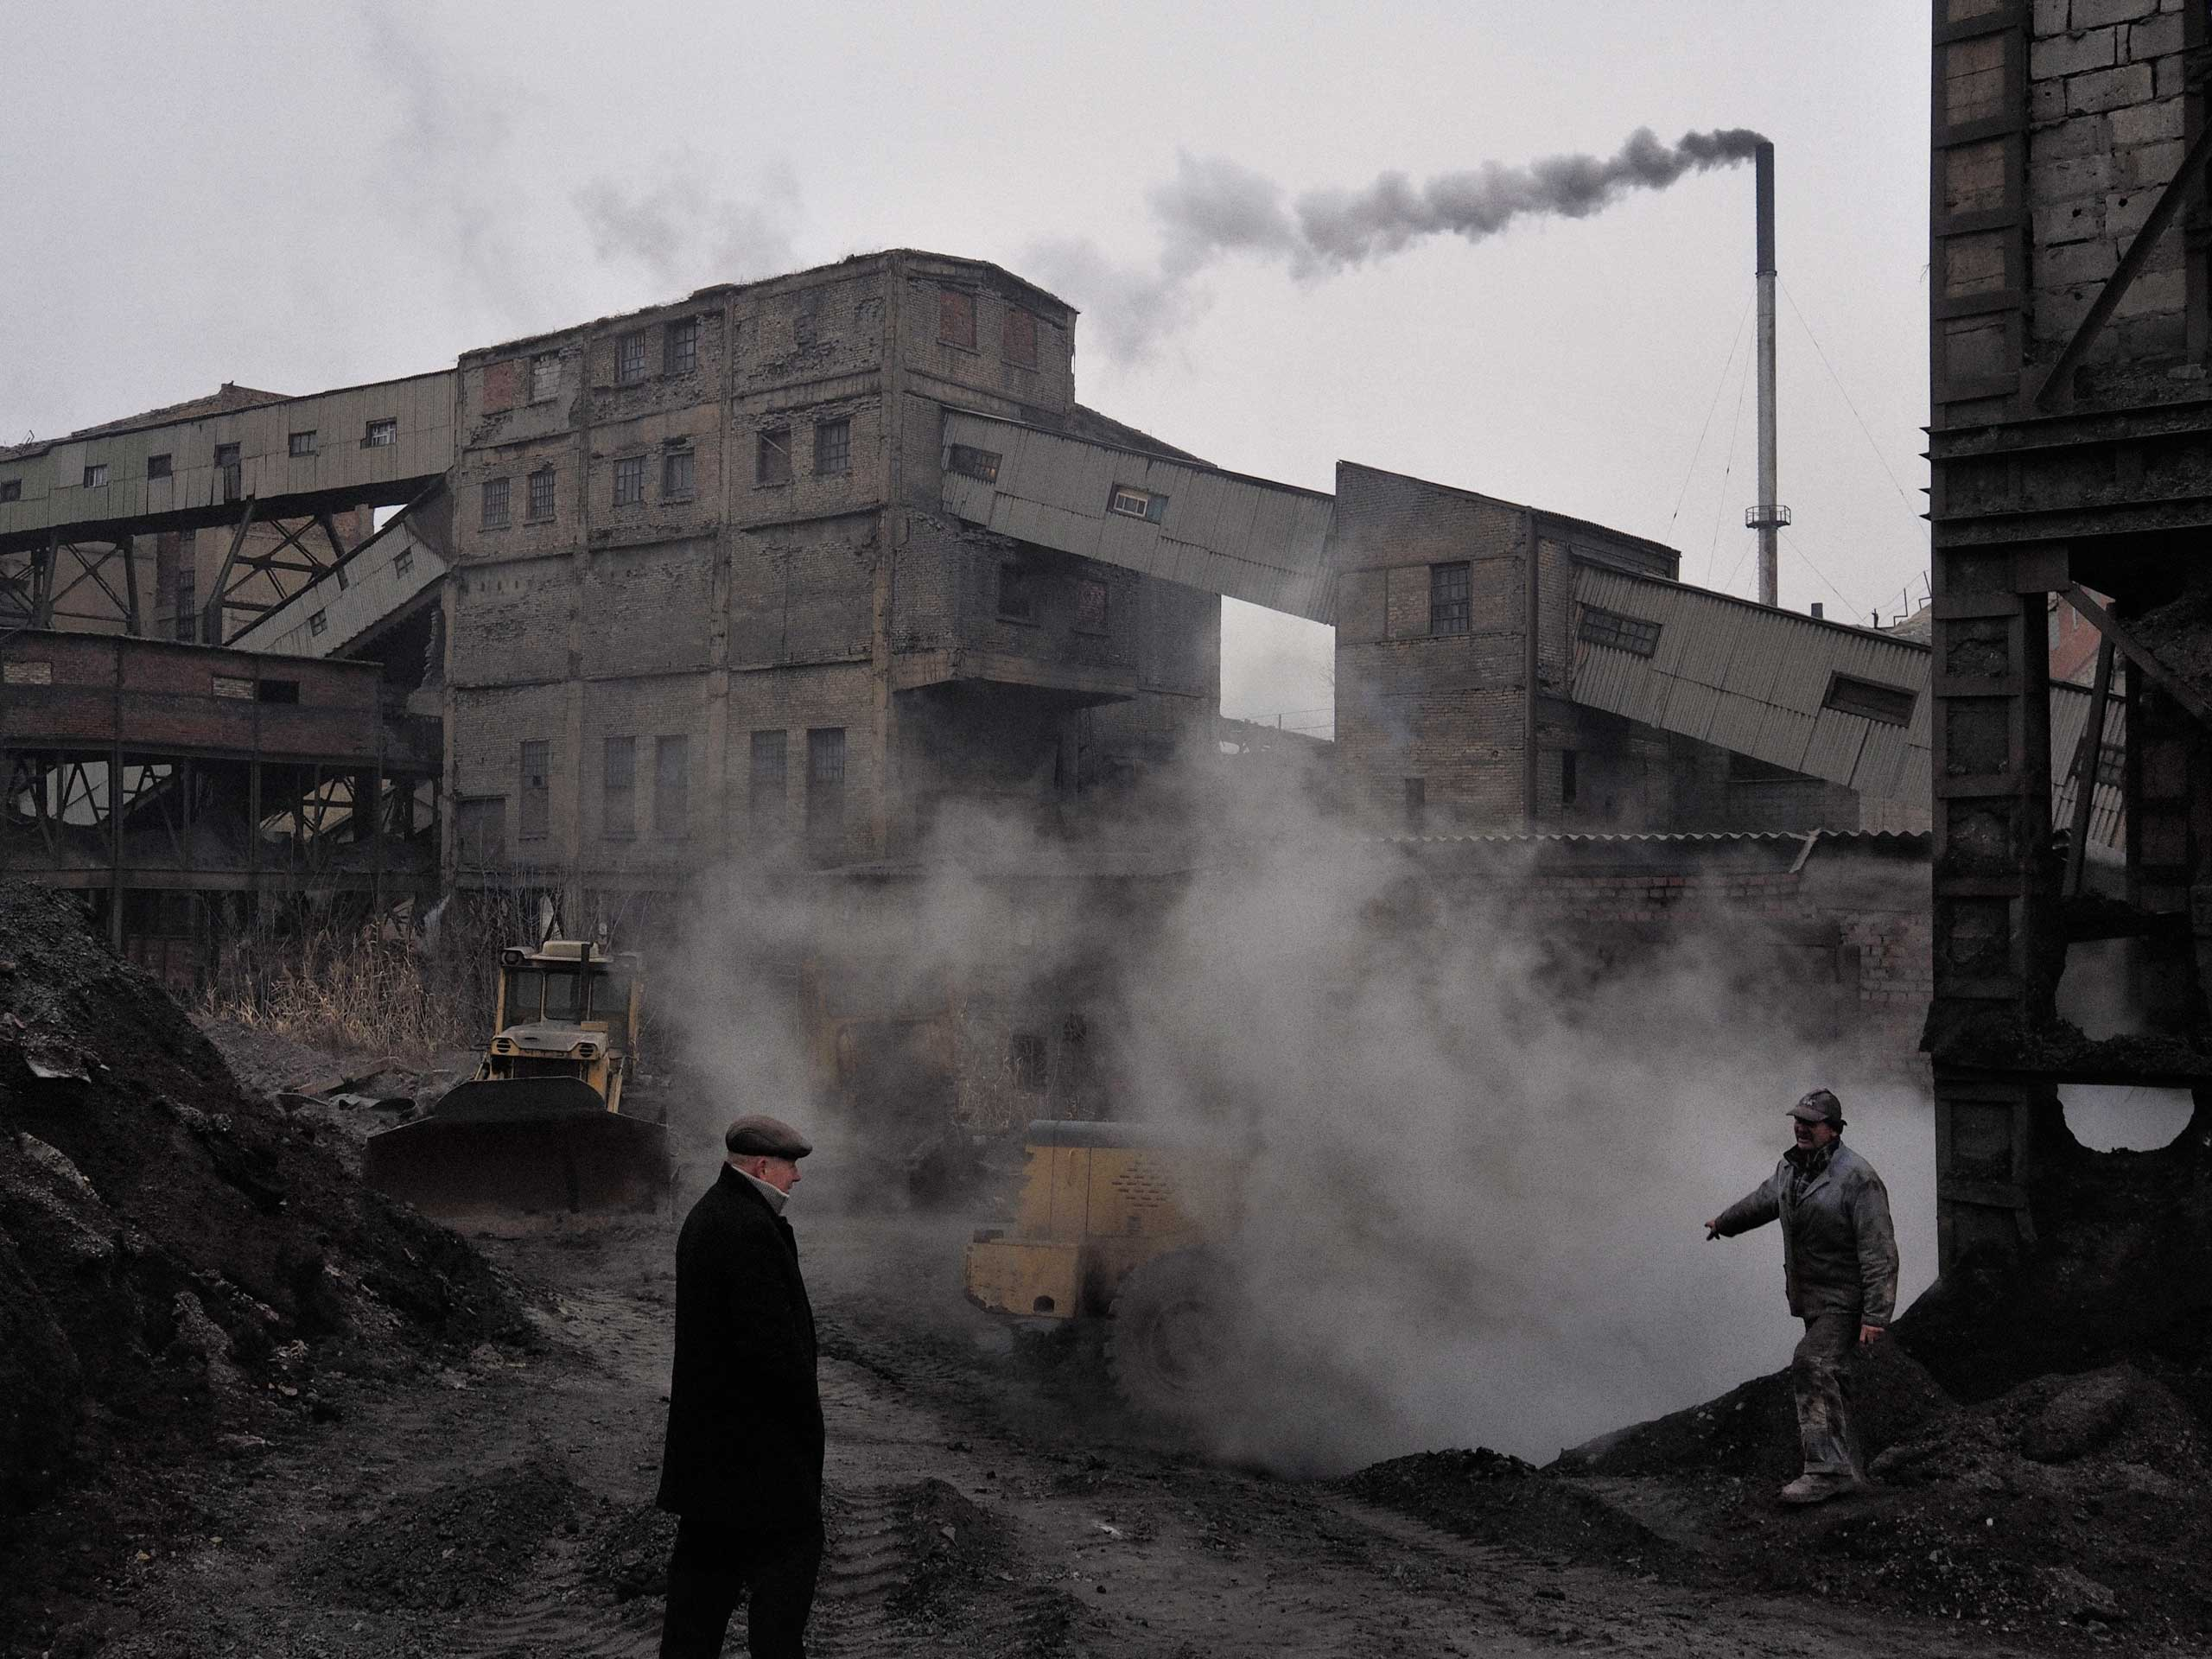 A miner gestures to a supervisor at a storage area for coal situated at the back of the Chelyuskintsev mine complex. Petrovskyi district, Donetsk, Ukraine. Nov. 24, 2014.